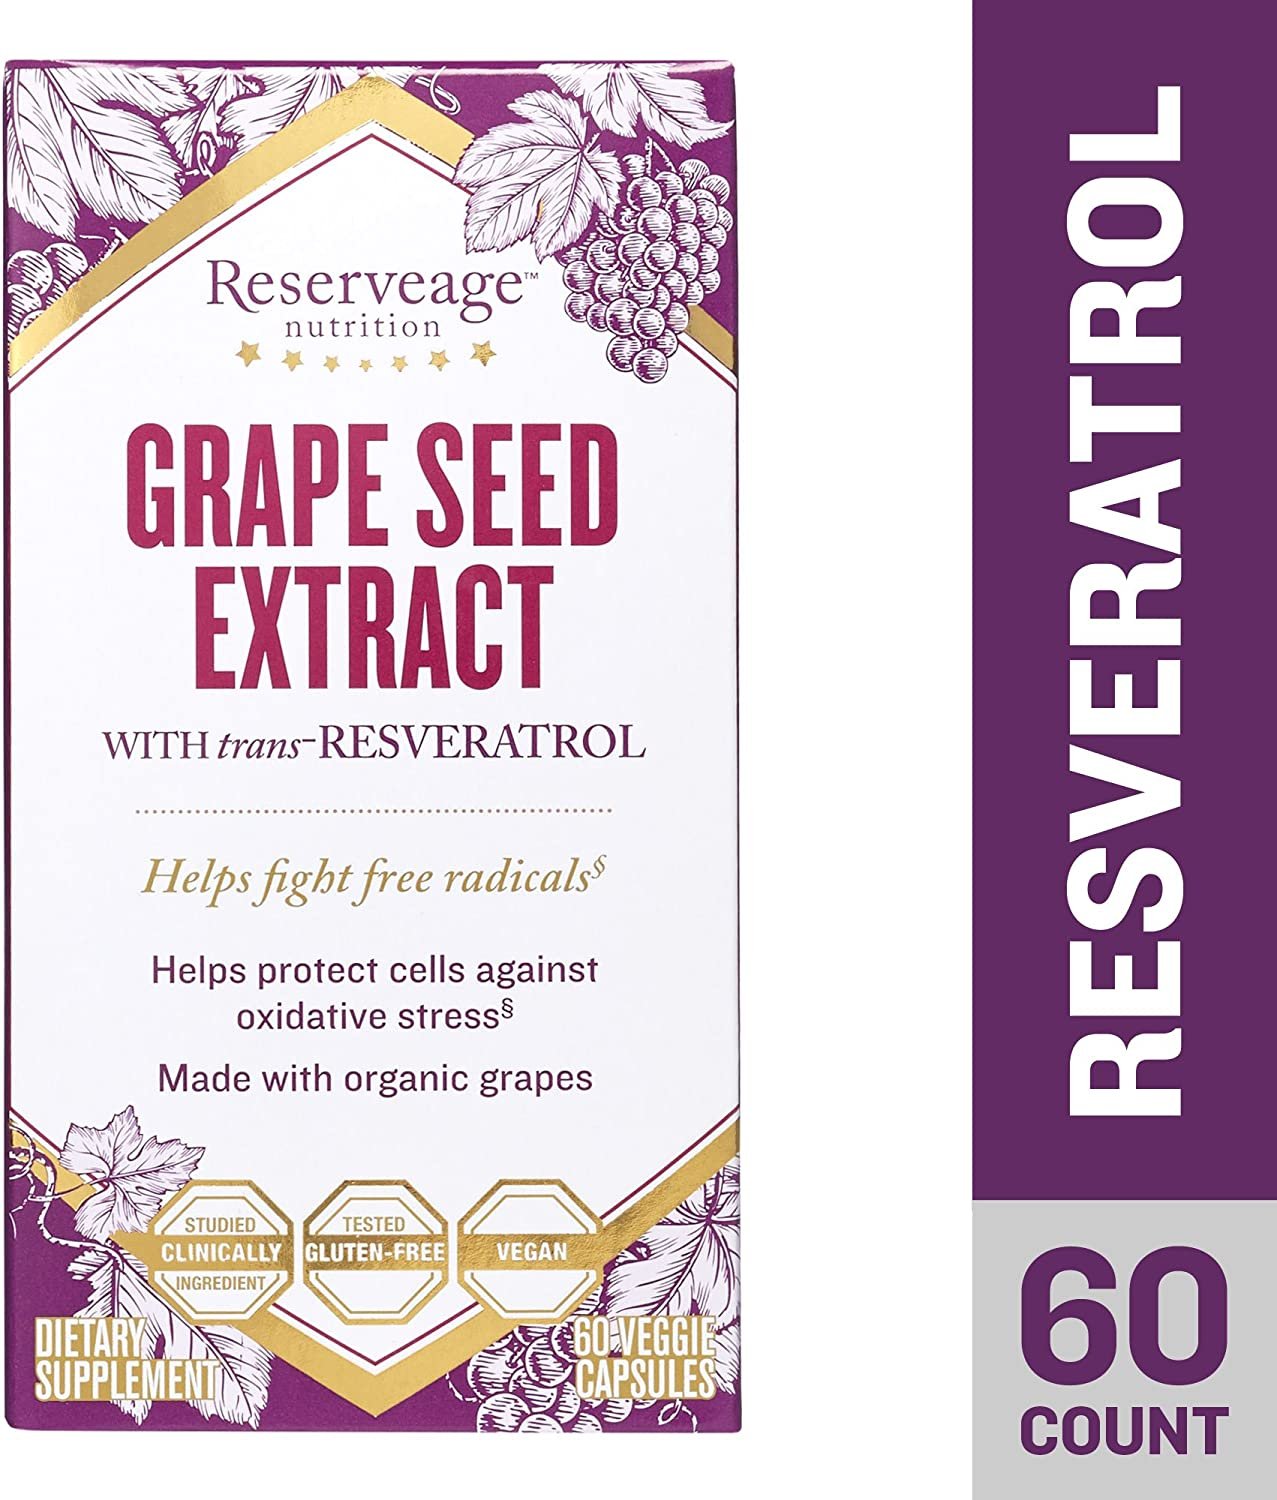 Reserveage, Grape Seed Extract with Resveratrol, for Antioxidant Protection, 60 Capsule